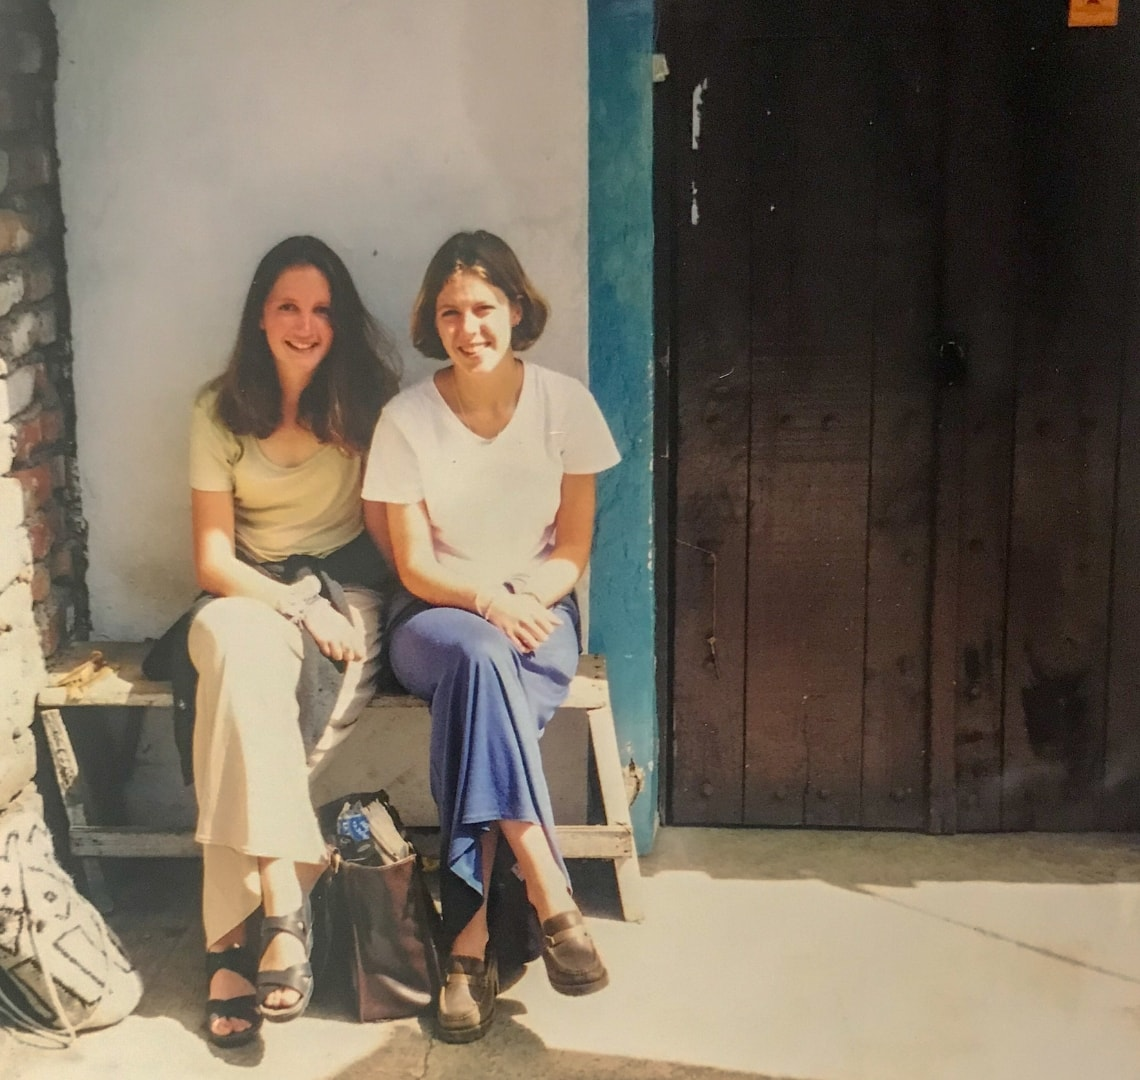 People Who Changed My Life Through Travel - Hillary - my gap year teaching partner and I outside one of the schools we taught in